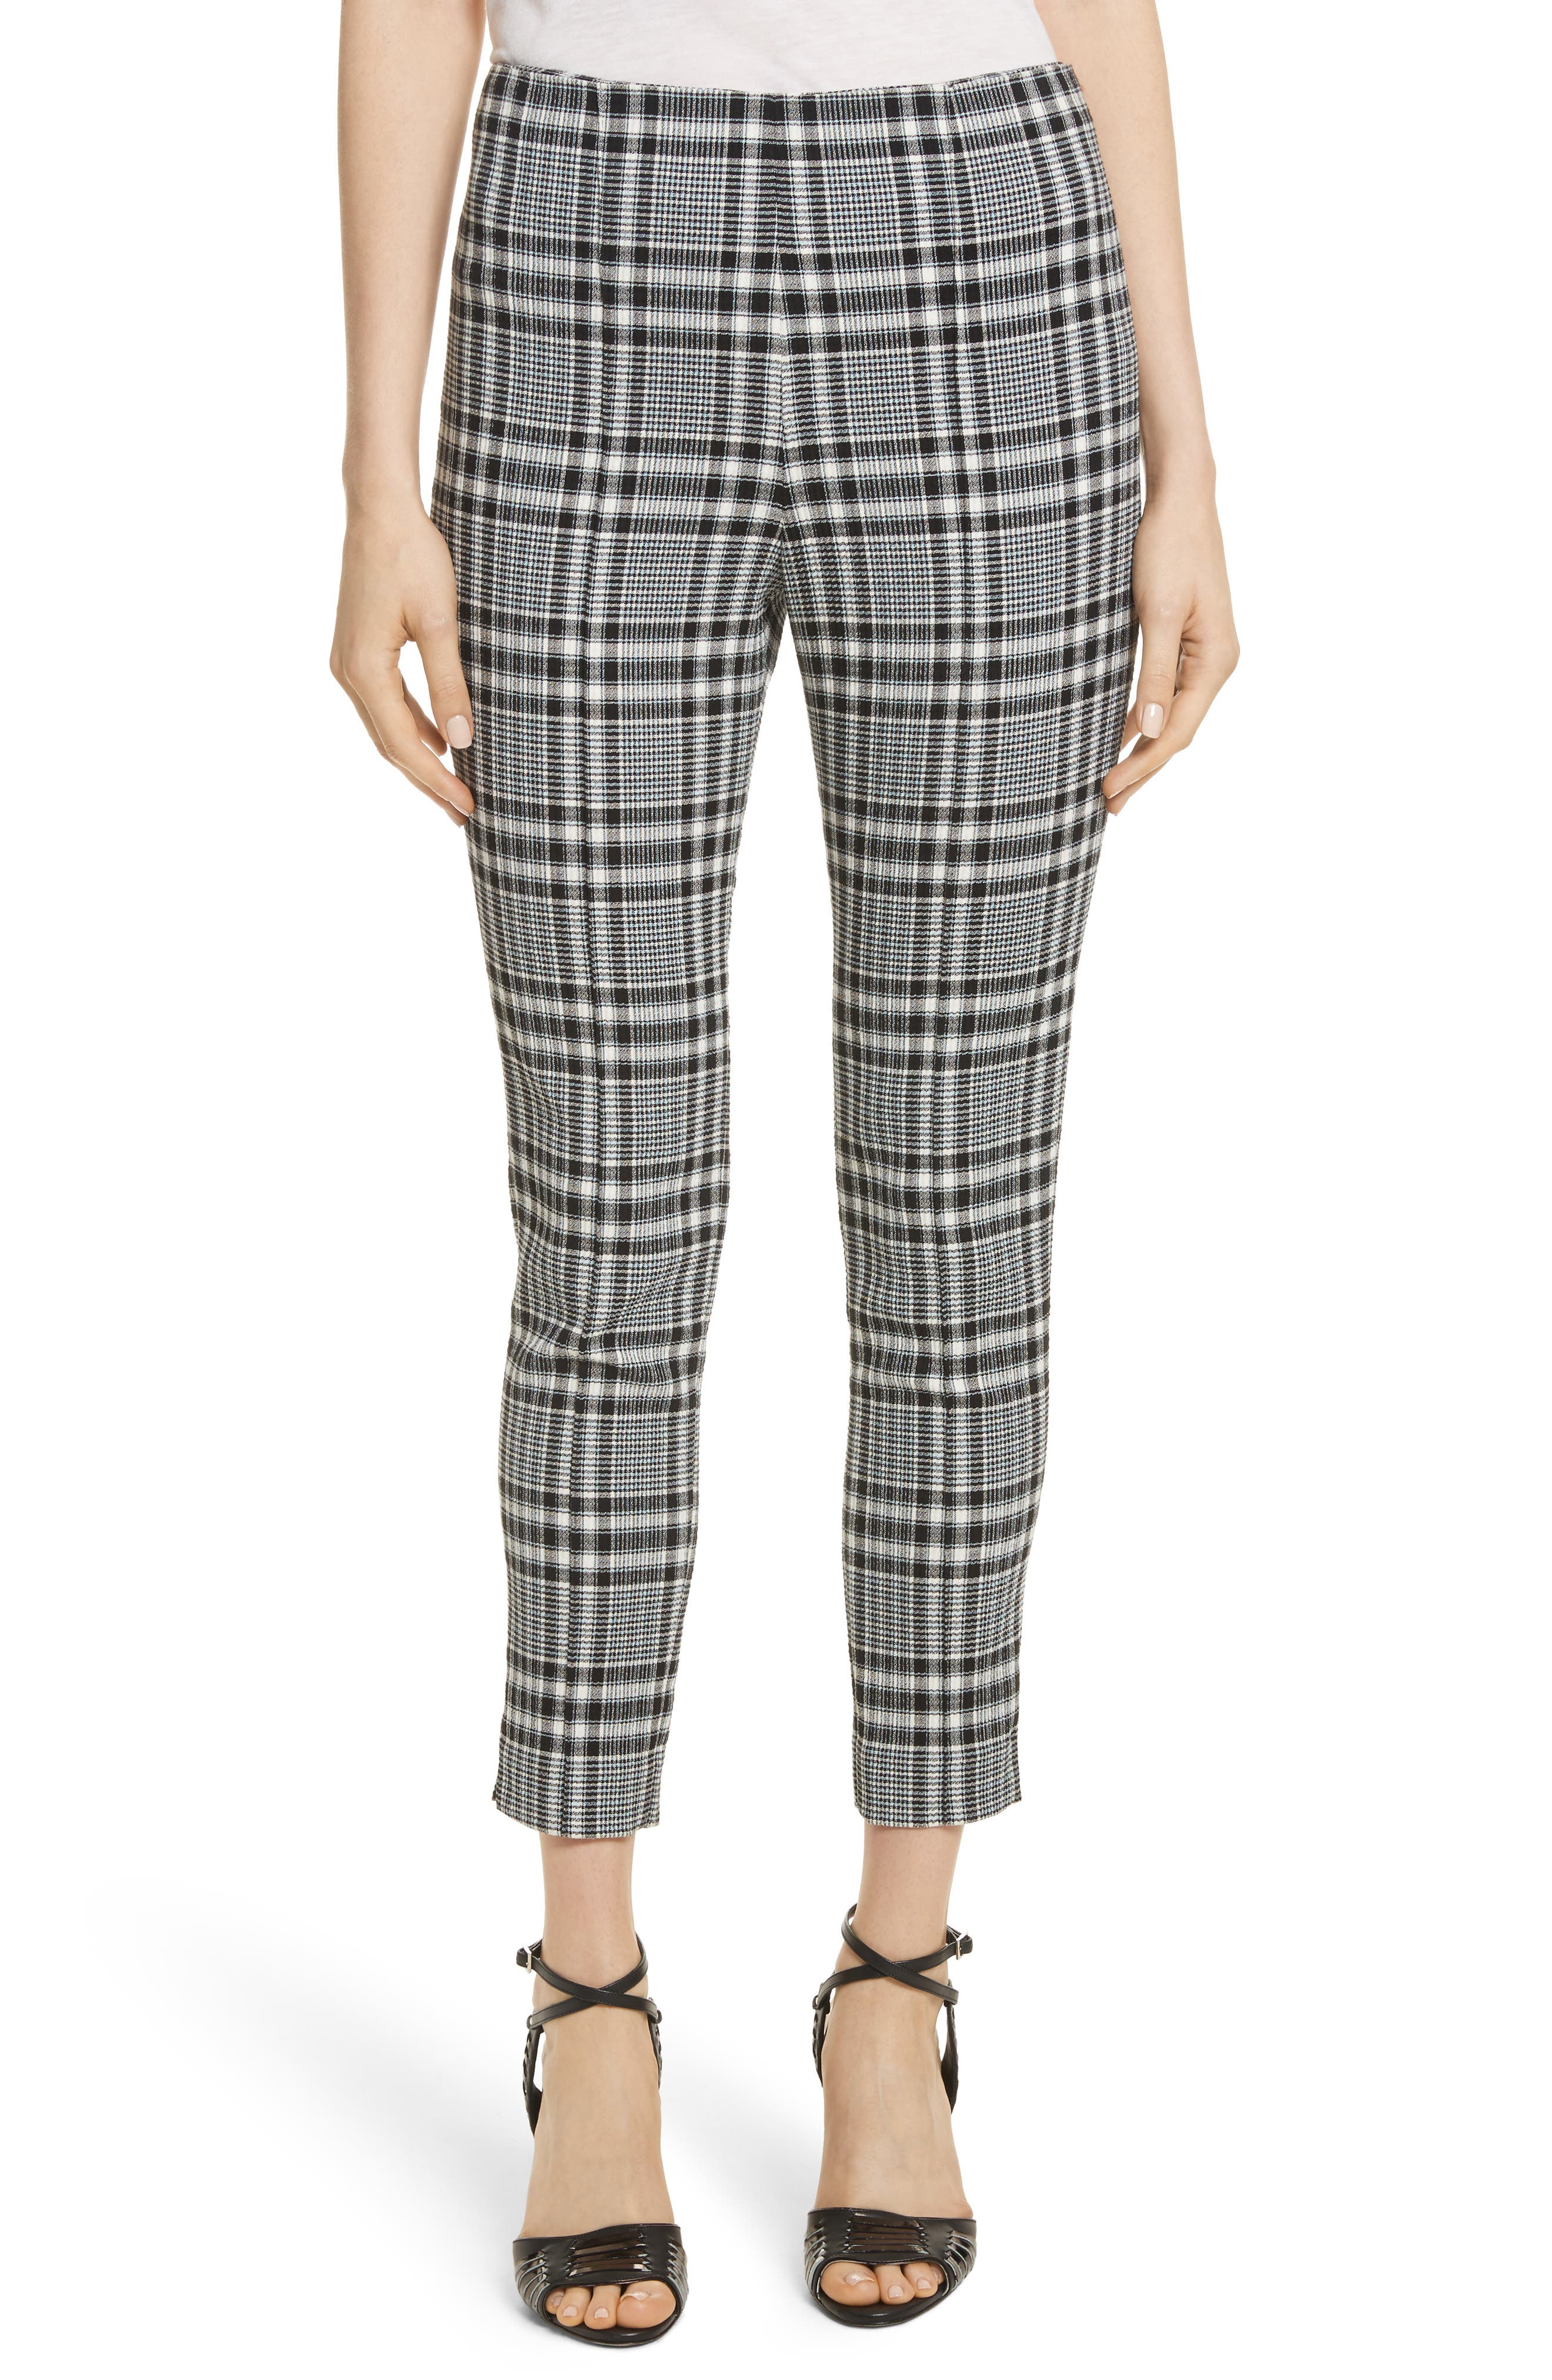 Honolulu Plaid Crop Pants,                         Main,                         color, Black/ Blue